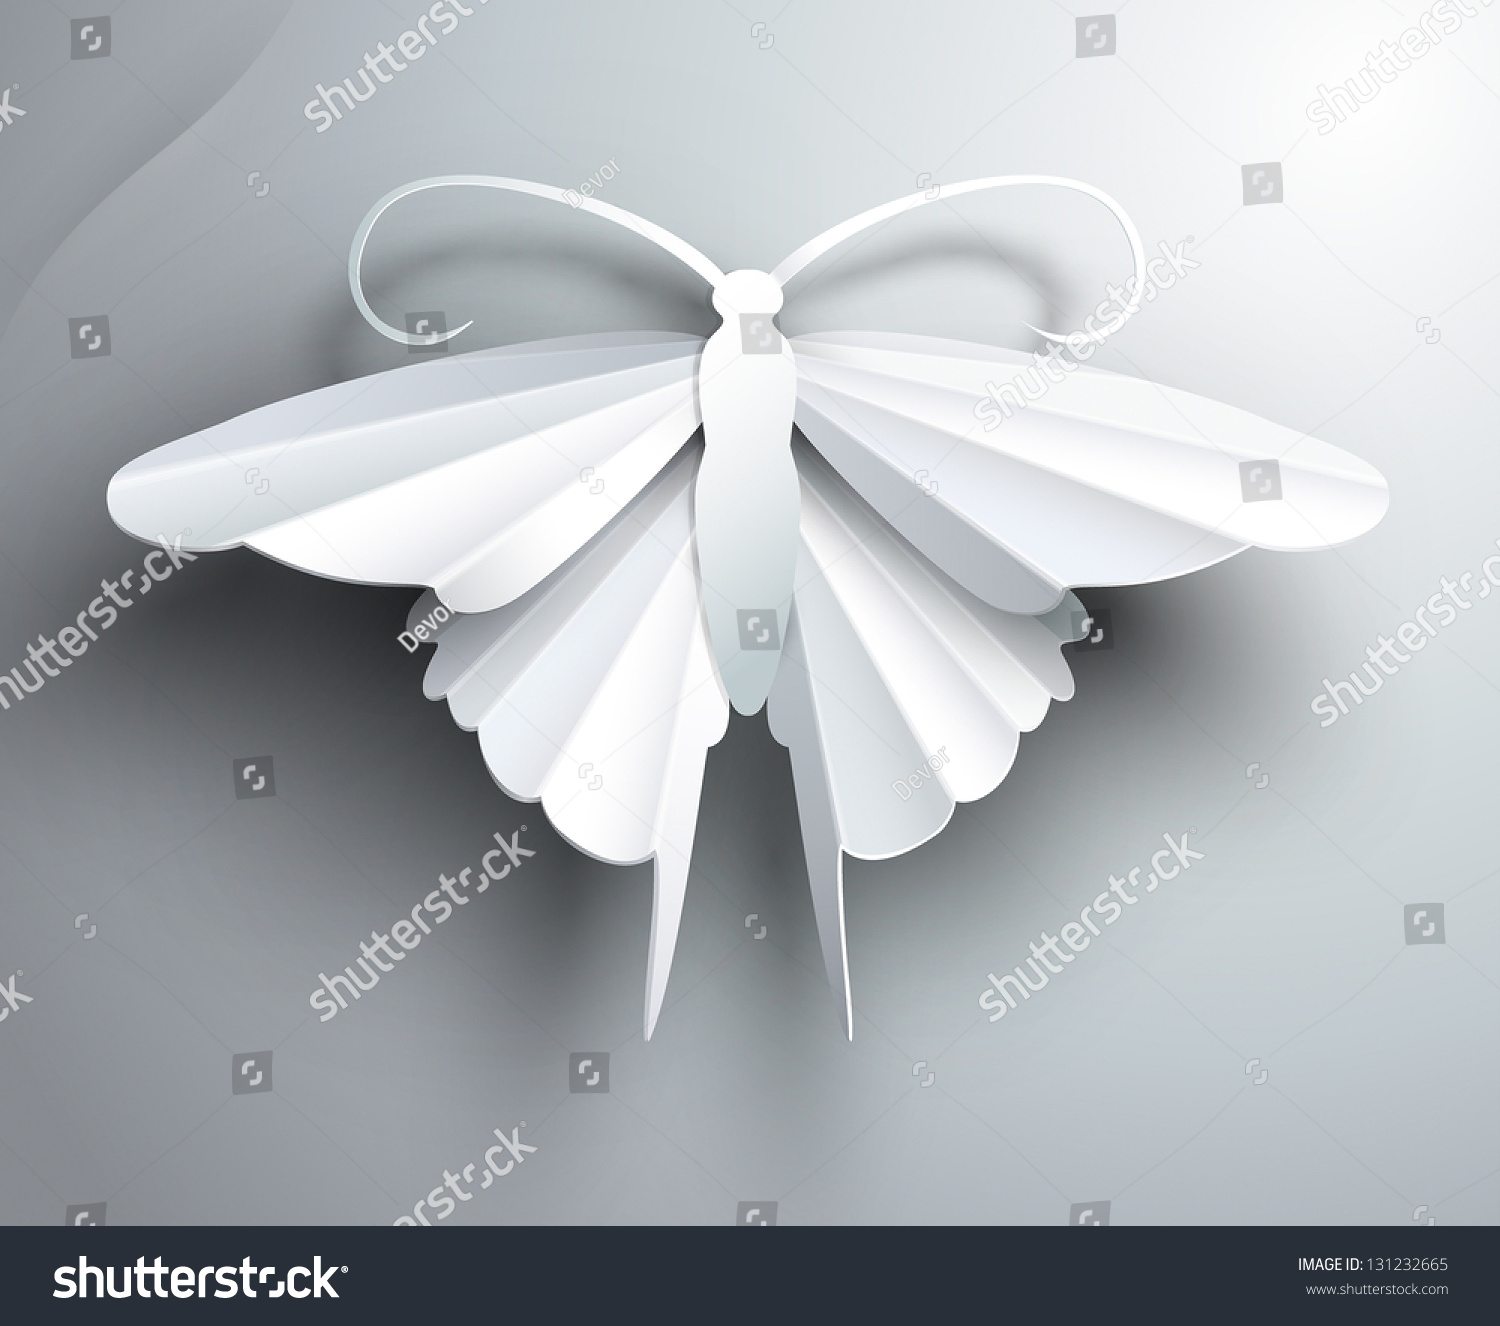 Beautiful white3d paper butterfly stock vector for White paper butterflies